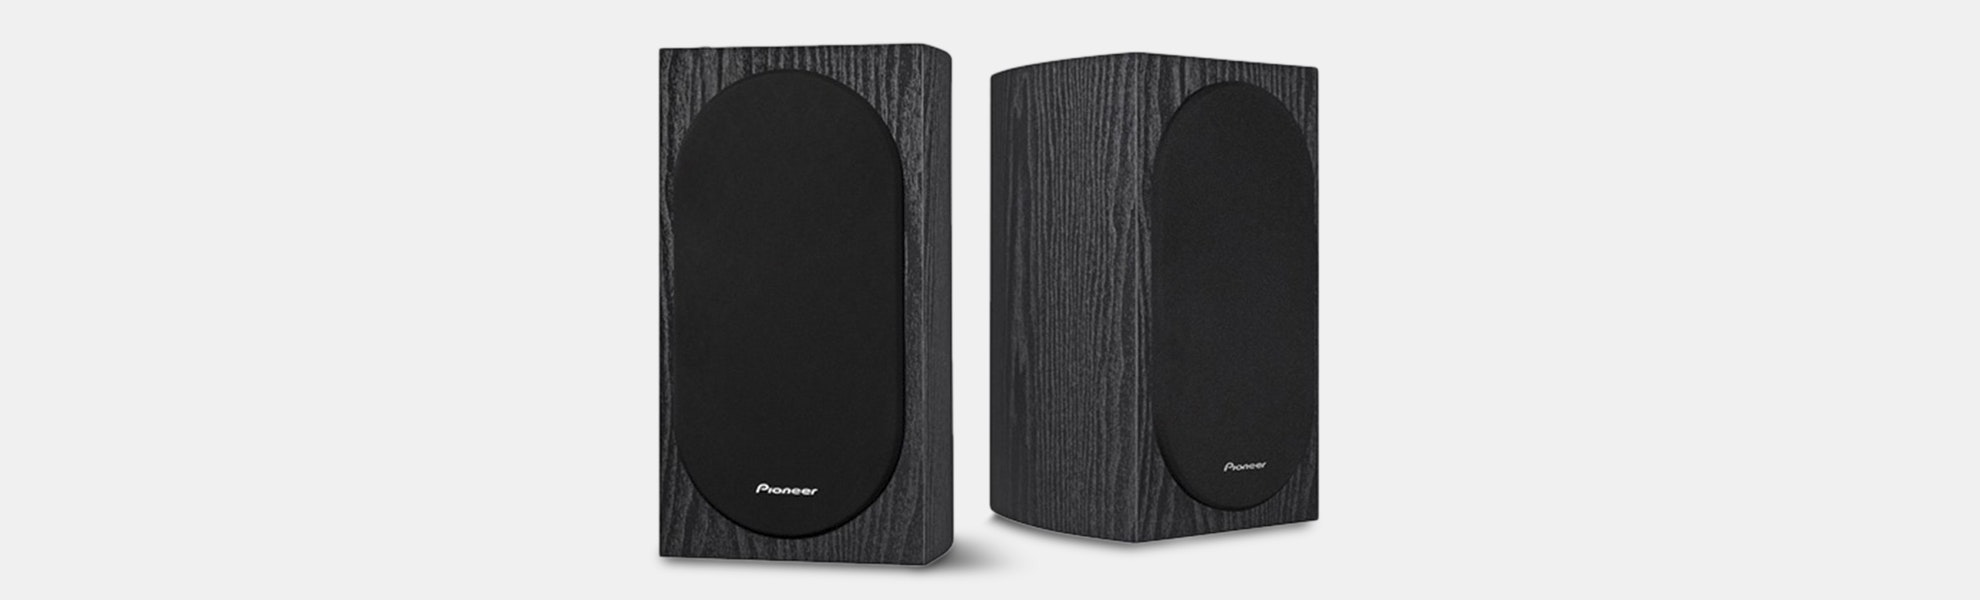 "Pioneer Andrew Jones 4"" 2-Way Bookshelf Speakers"